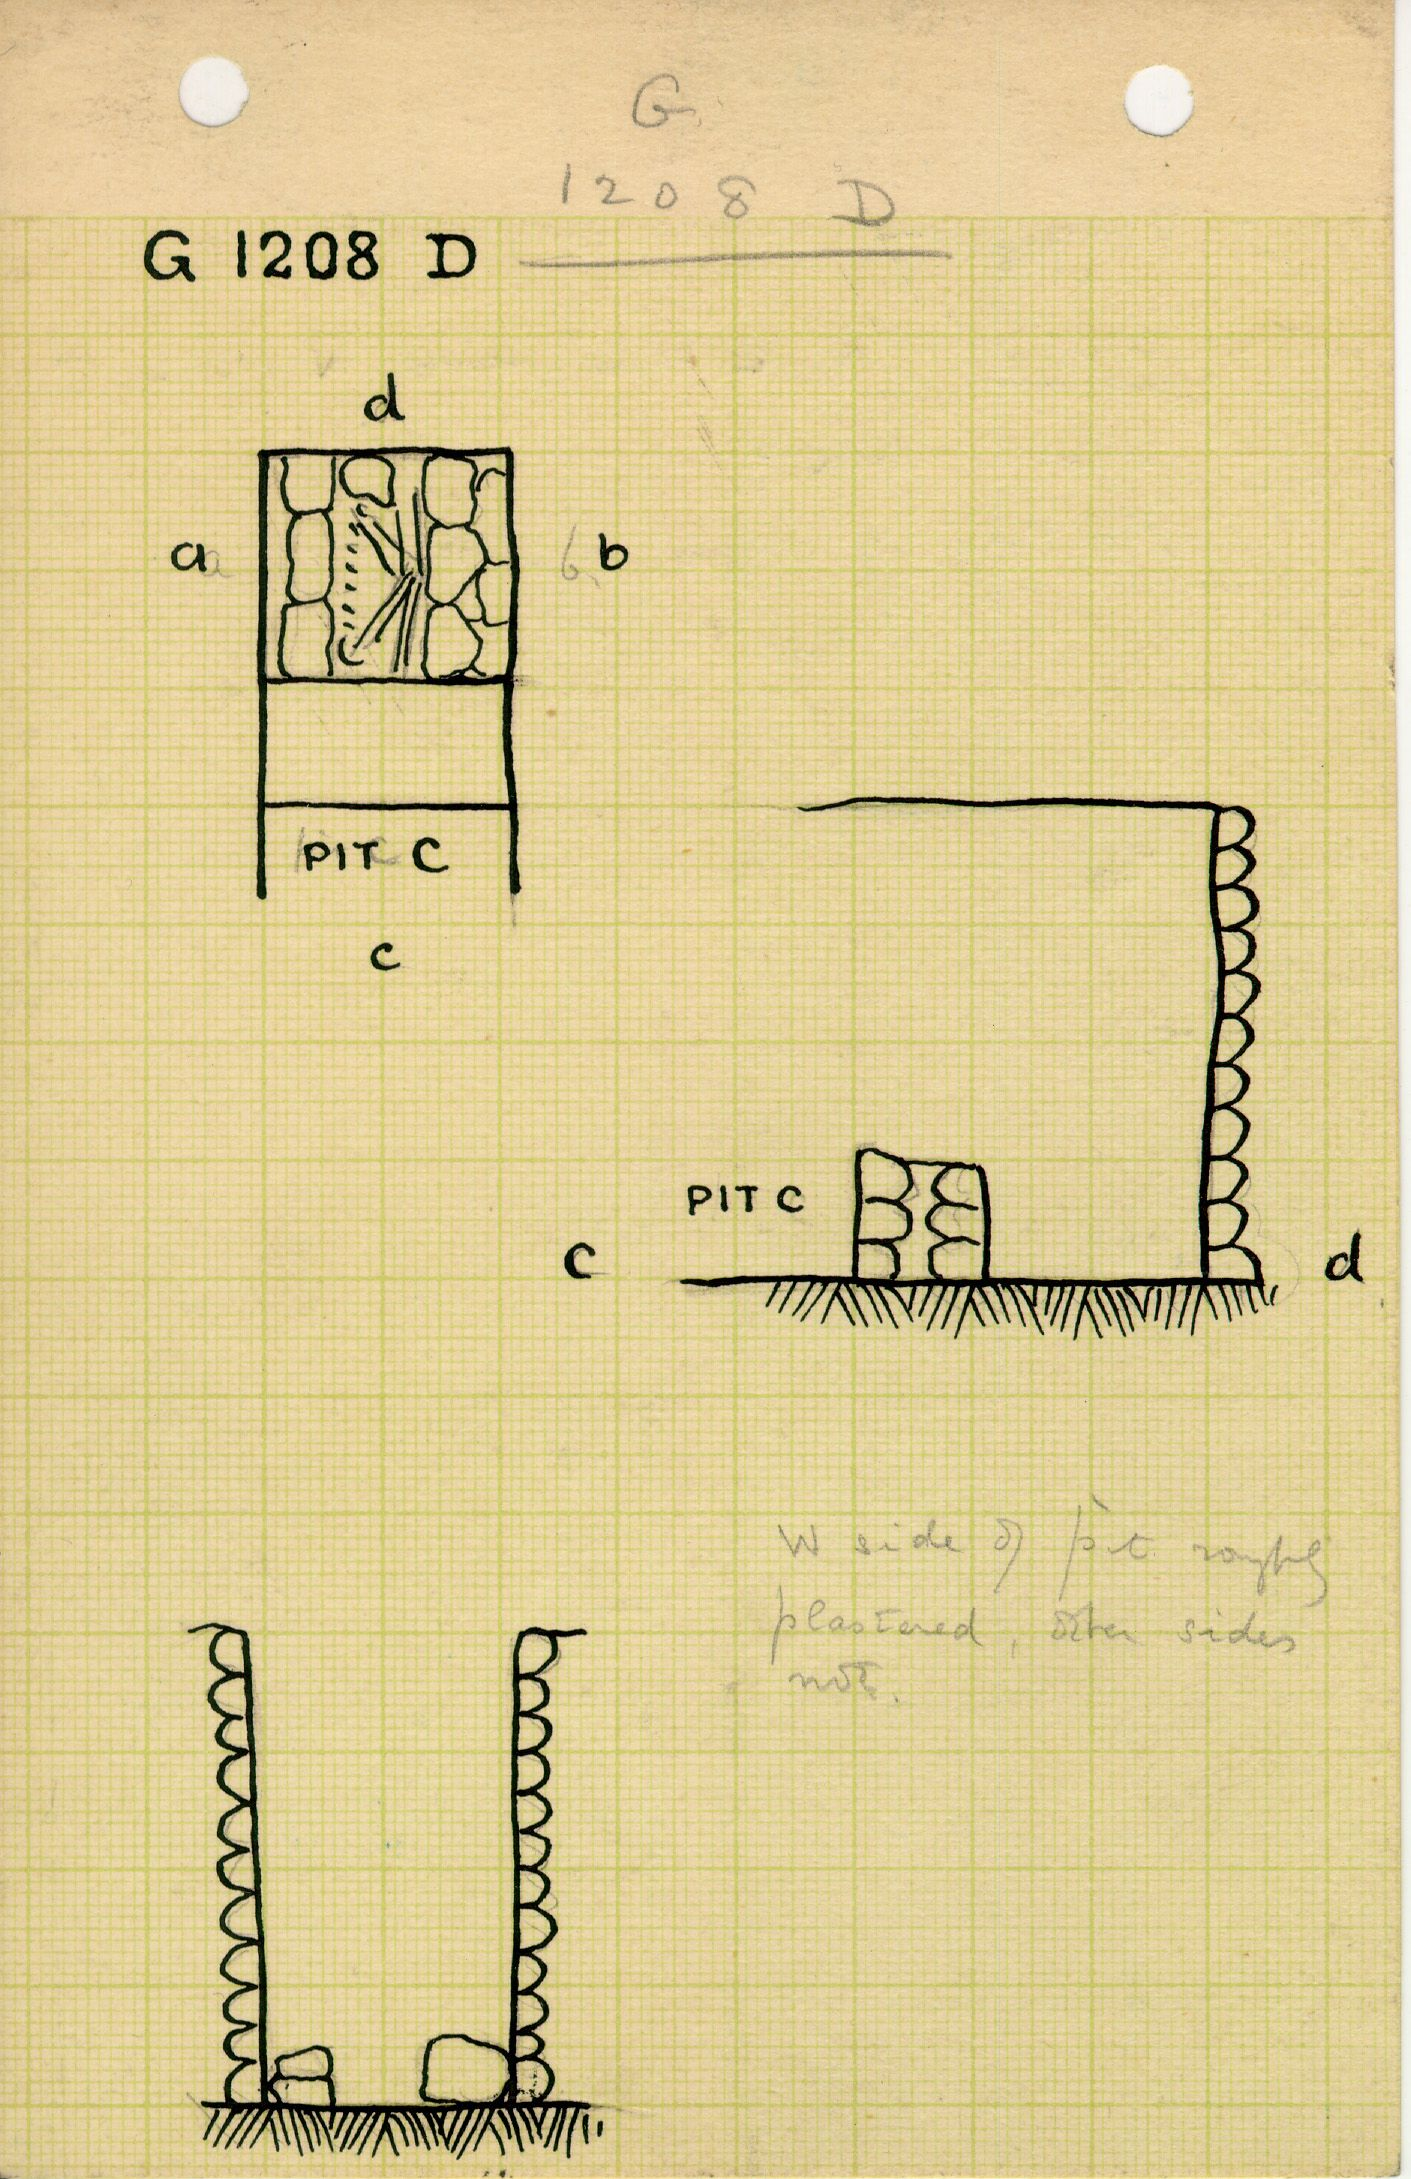 Maps and plans: G 1208, Shaft D